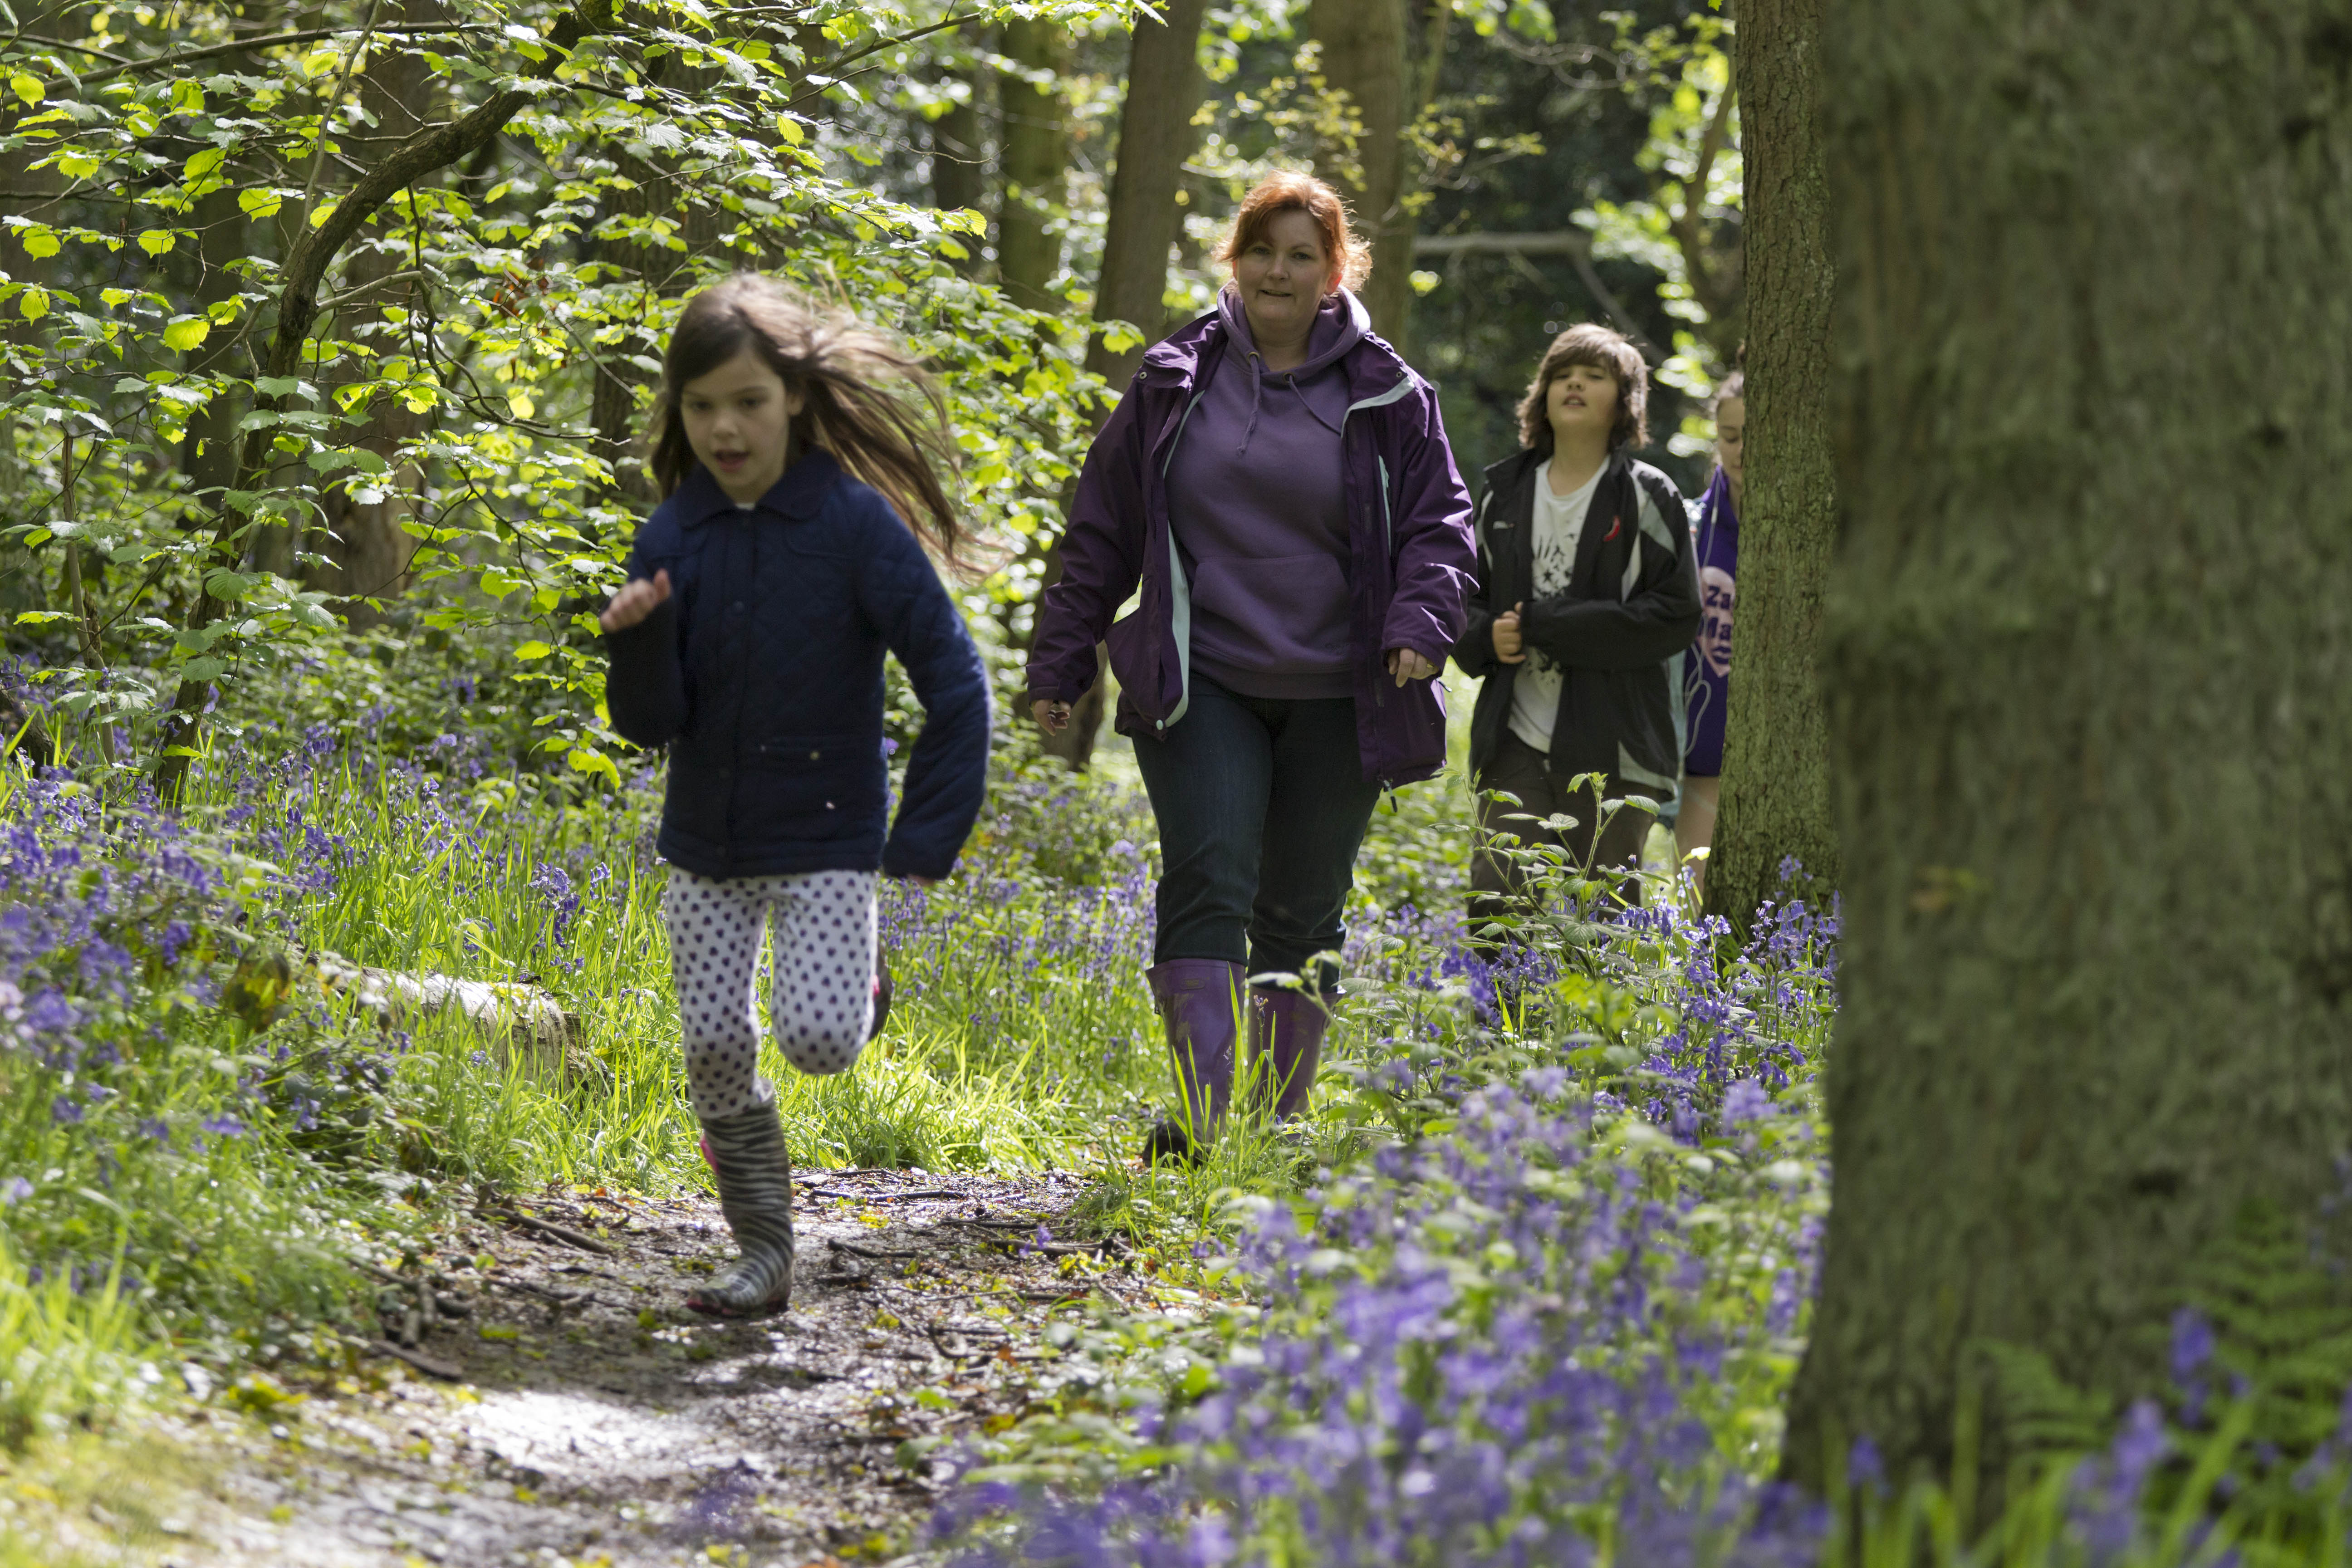 Chesterfield Area Walking Festival runs from Saturday 6 to Sunday 14 May 2017